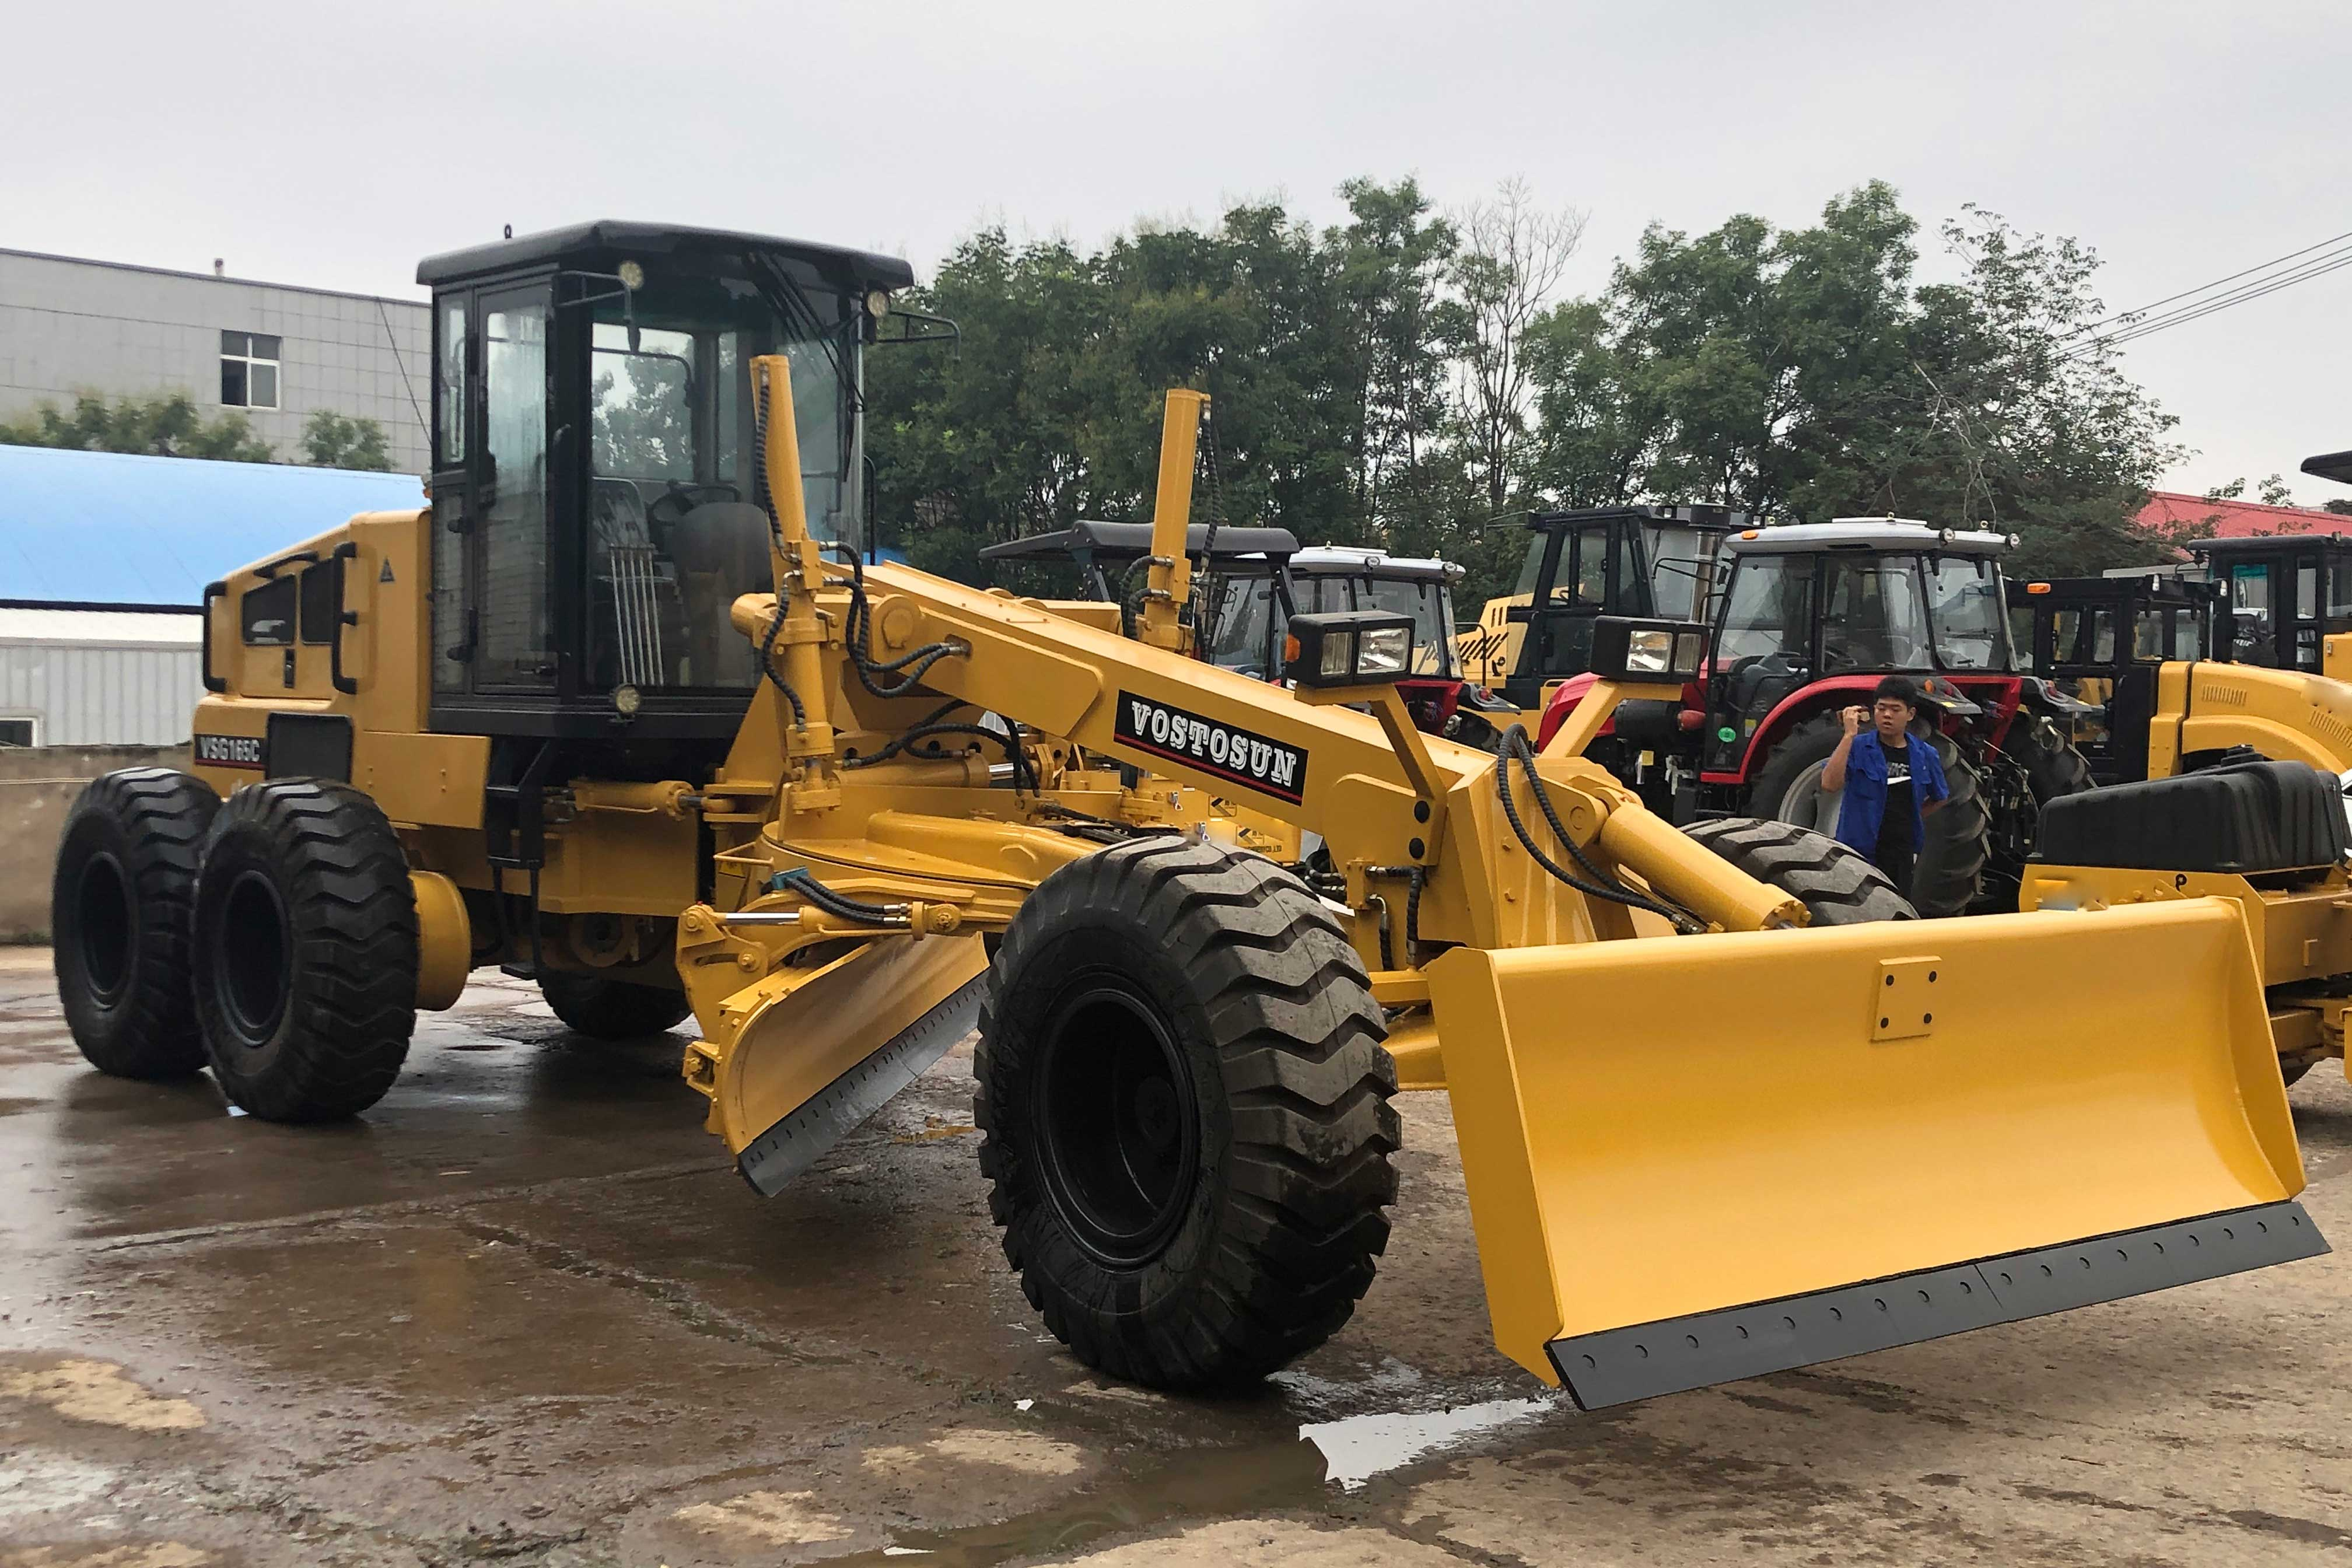 On August 27, 2020, VOSTOSUN's motor grader were packed and transported to Ukraine.